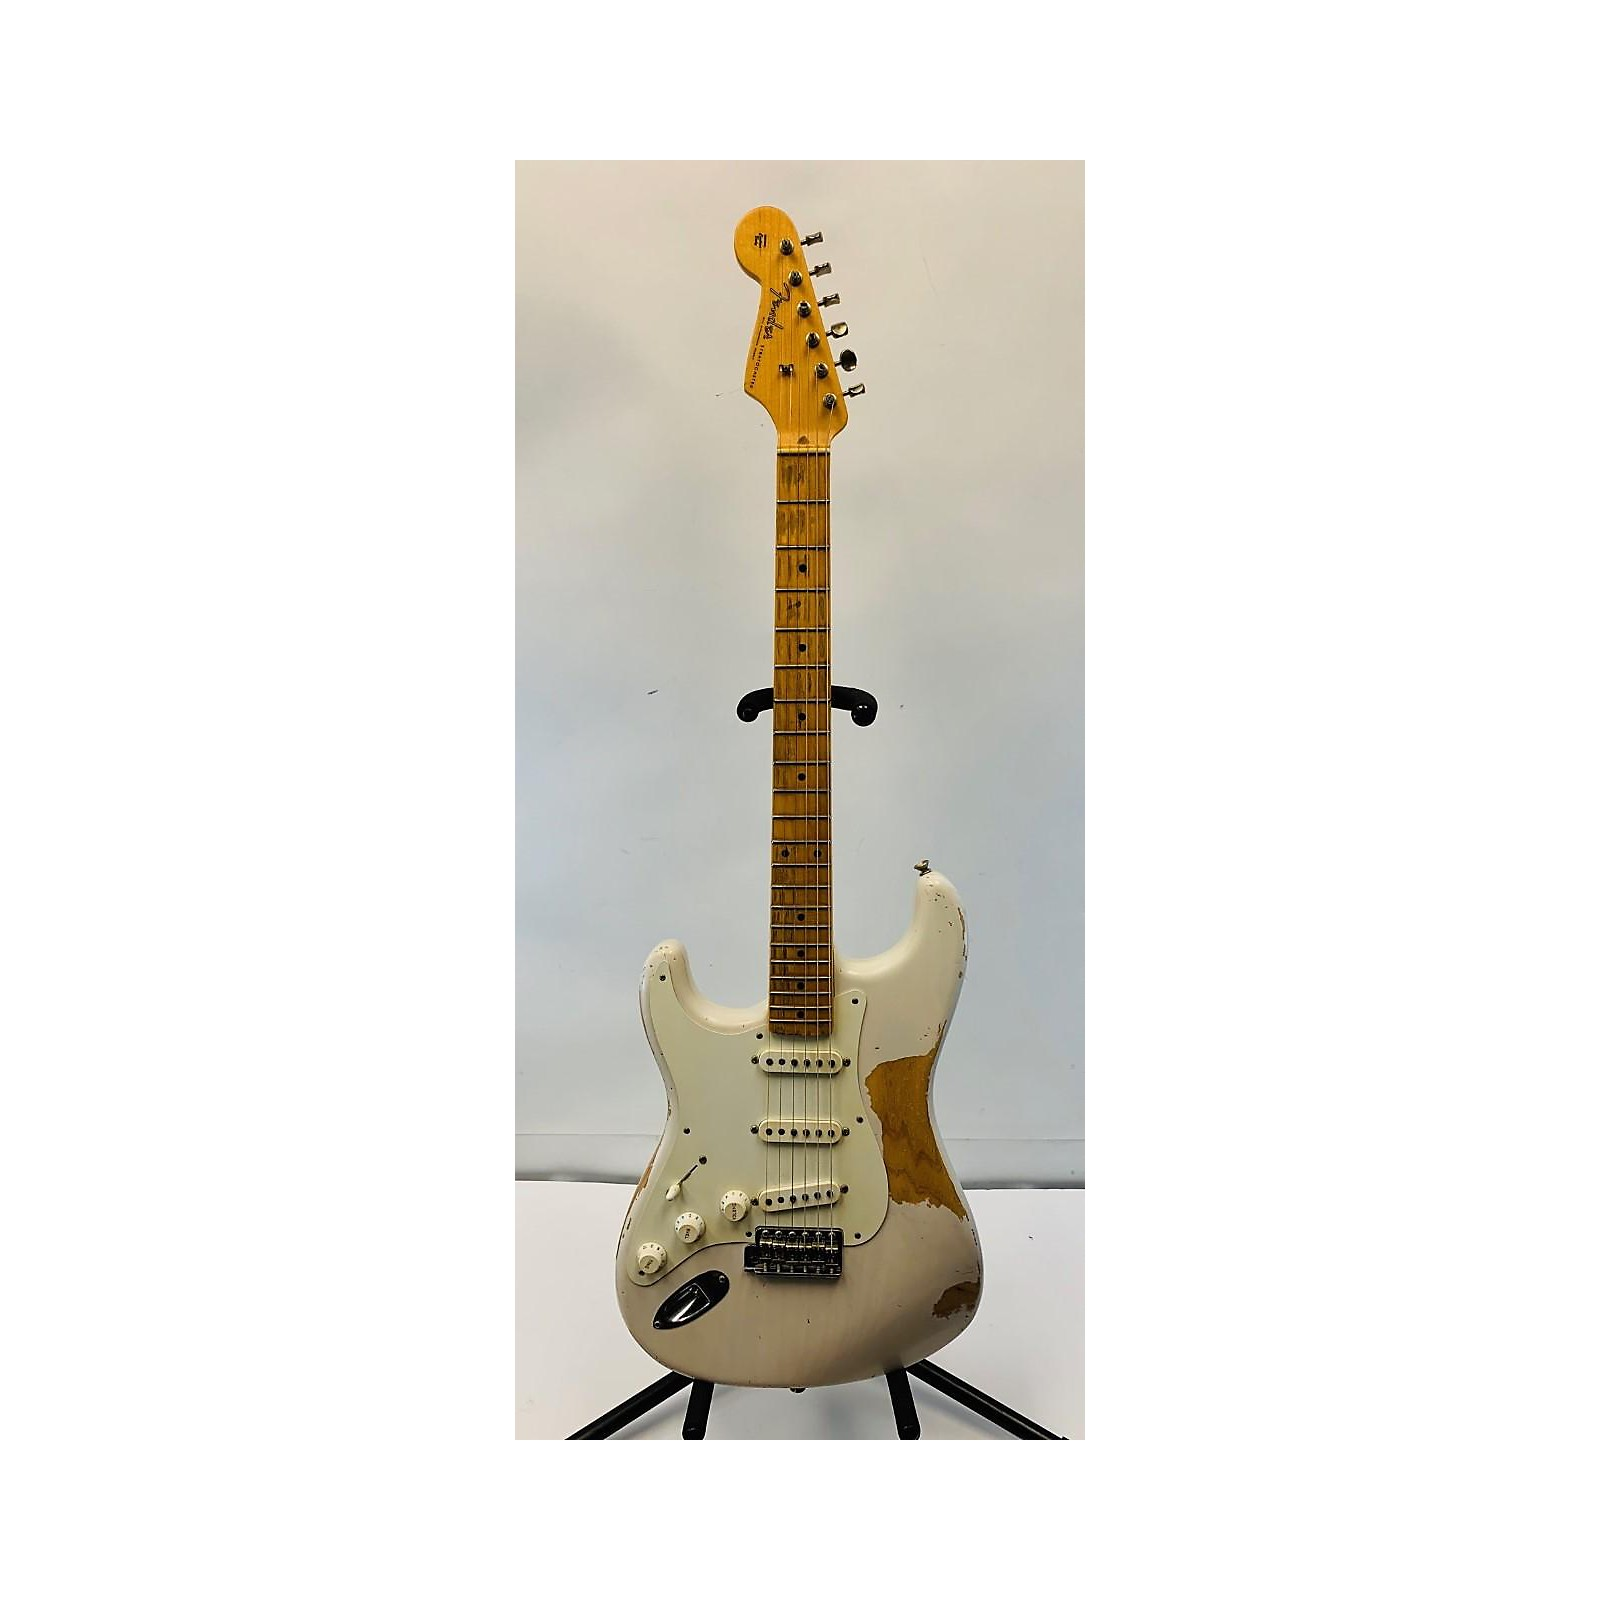 Fender 1959 American Vintage Stratocaster Solid Body Electric Guitar